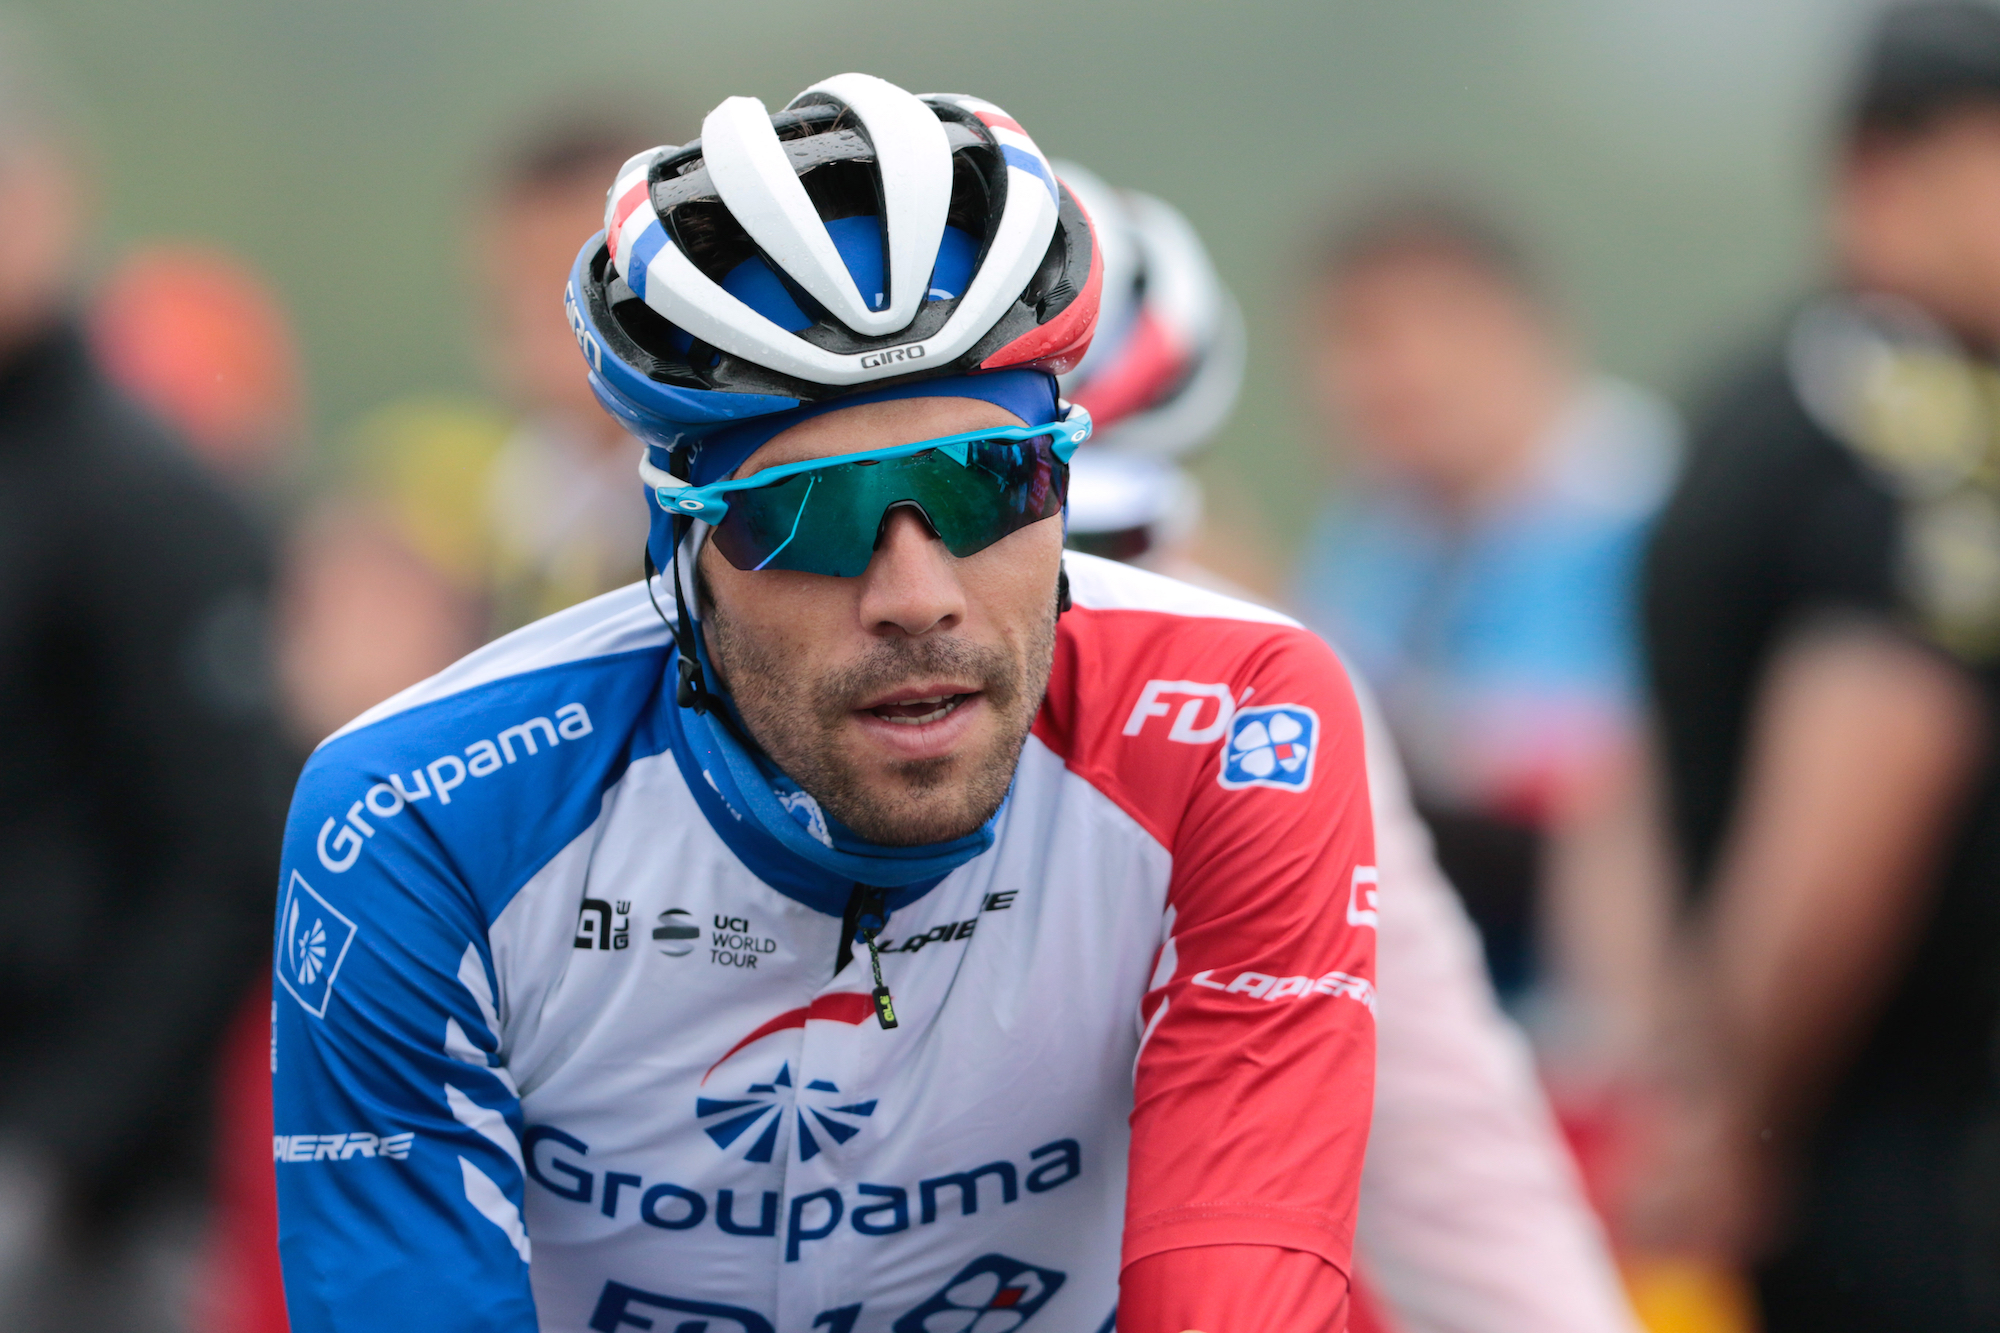 Thibaut Pinot 'already focused on Tour de France' as he returns to racing - Cycling Weekly